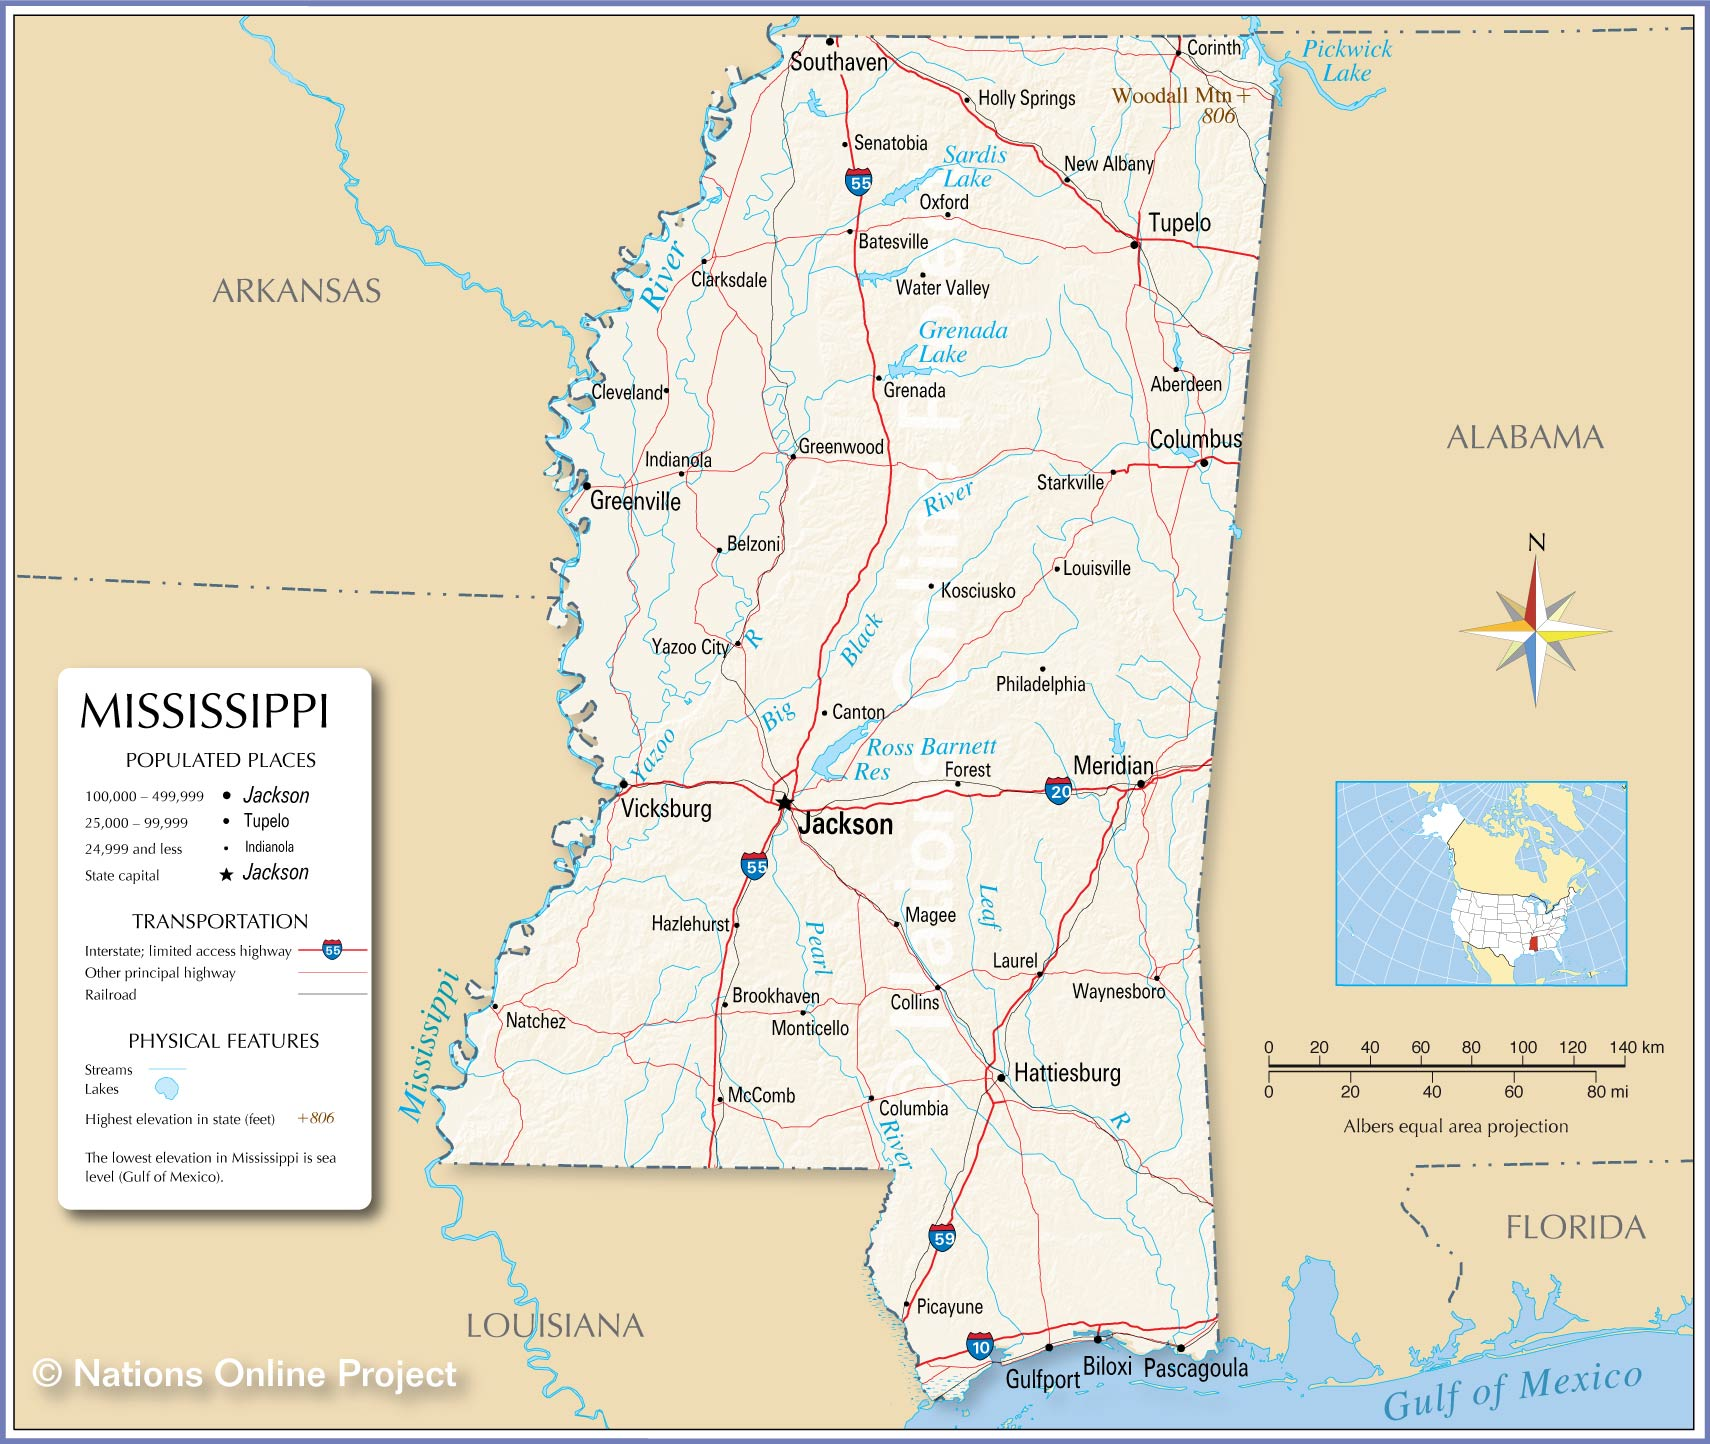 reference map of mississippi. reference map of mississippi  nations online project